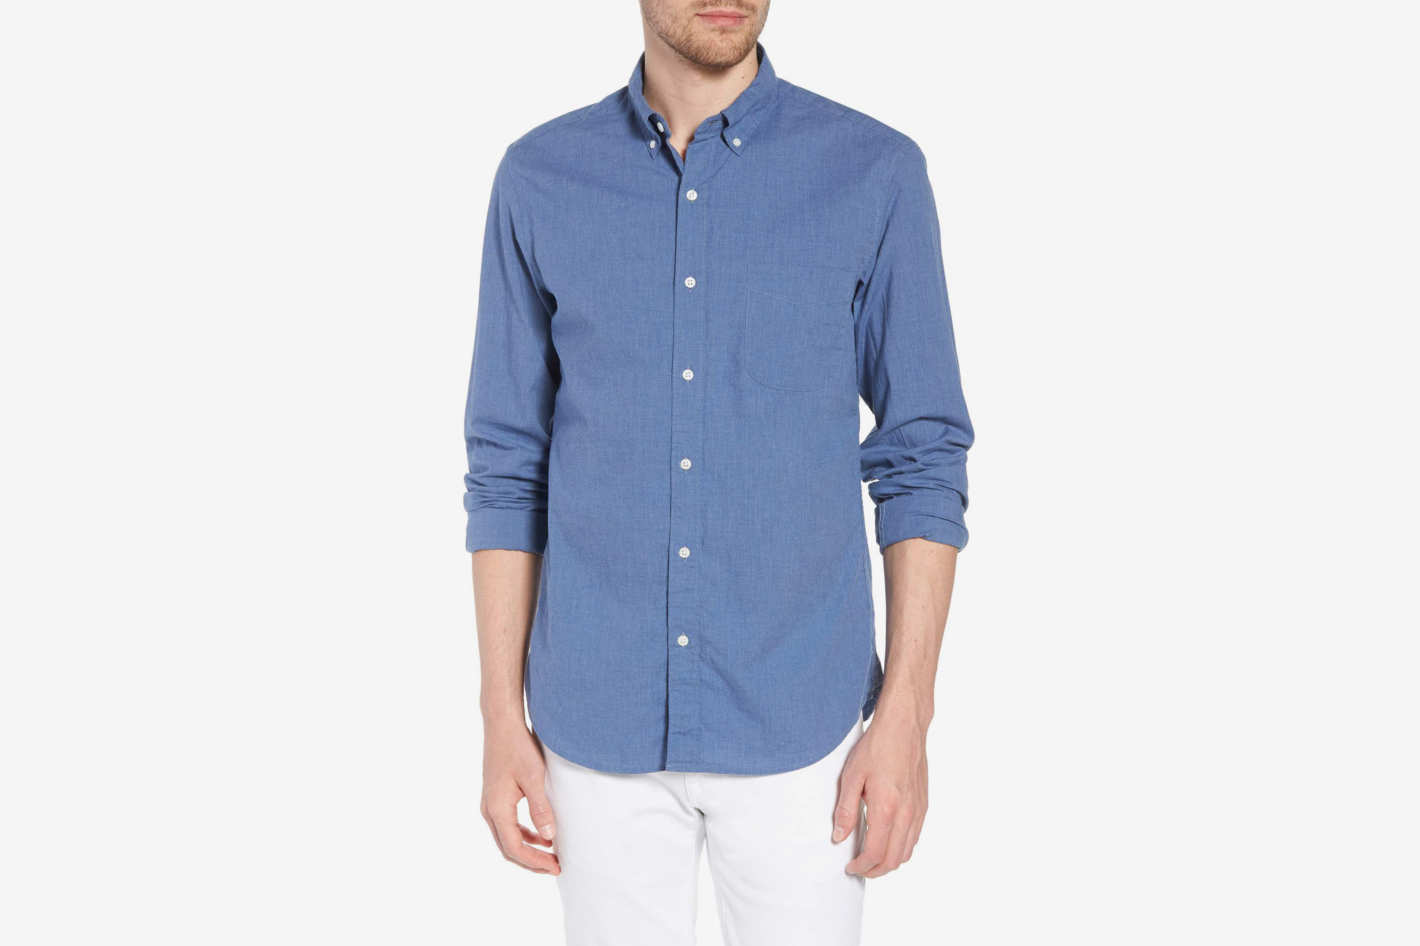 J.Crew Slim Fit Stretch Secret Wash Heather Poplin Sport Shirt